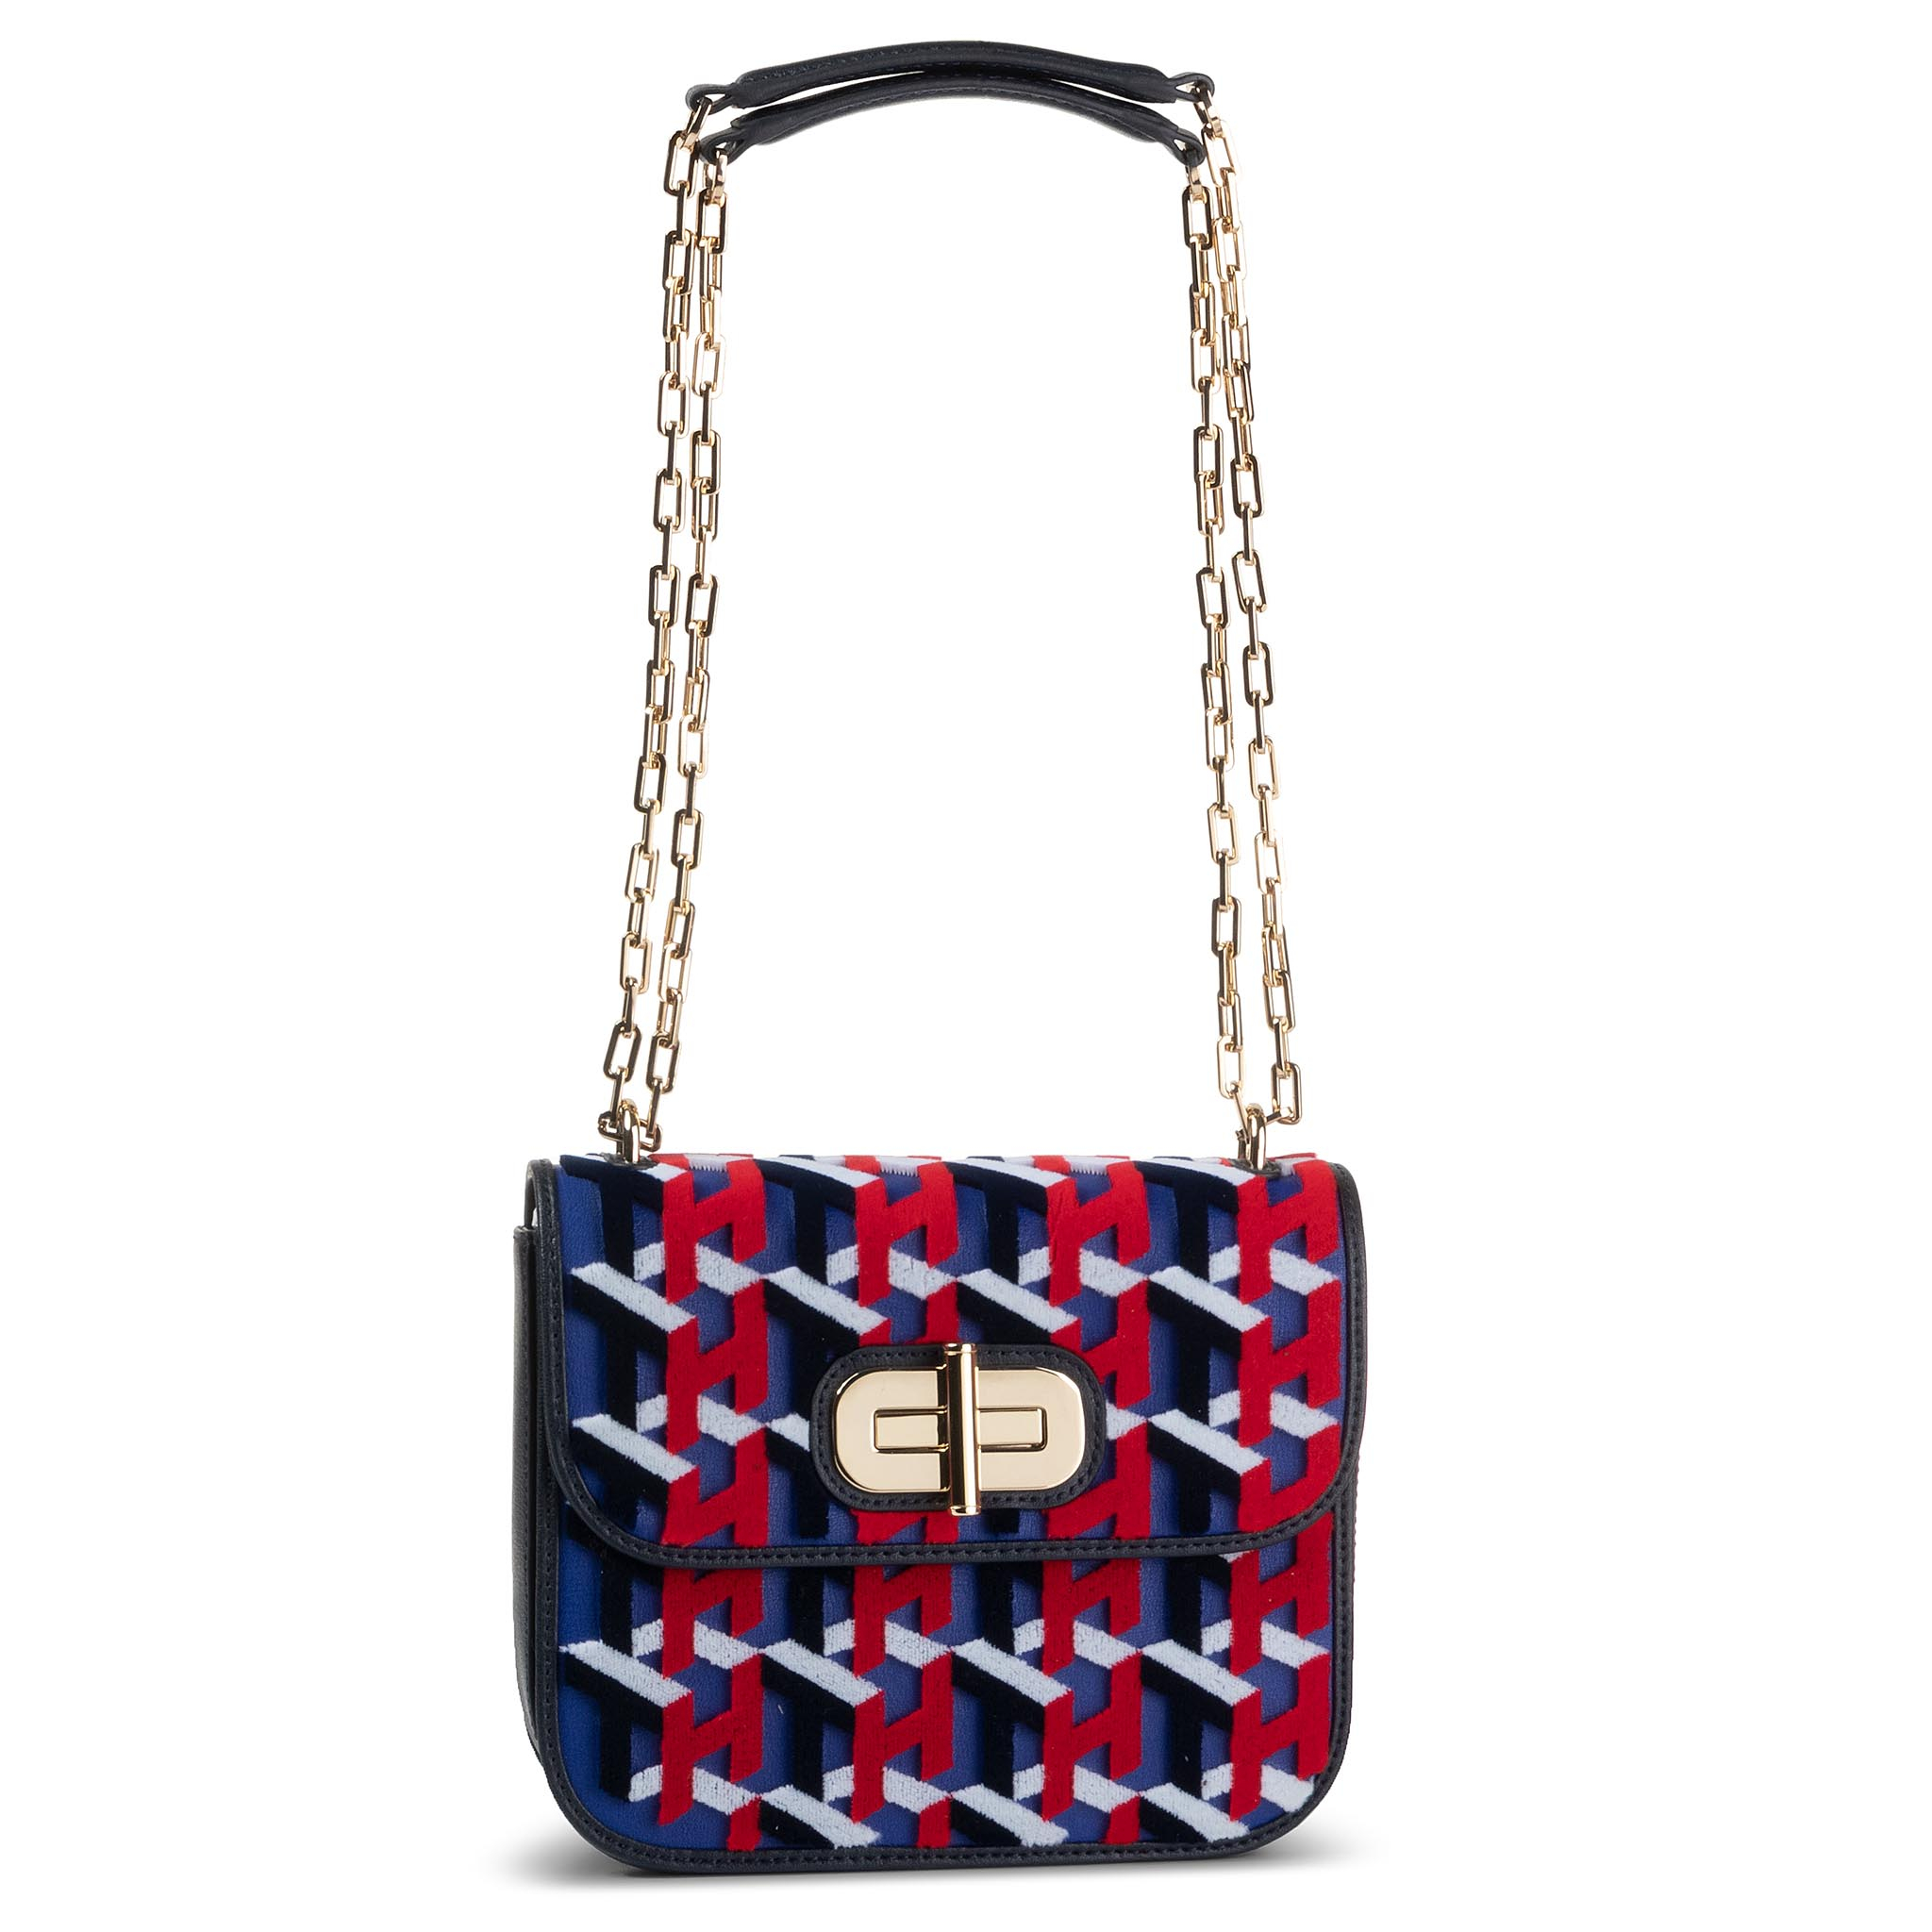 Geantă TOMMY HILFIGER - Turnlock Crossover Velvet AW0AW07421 0IG New